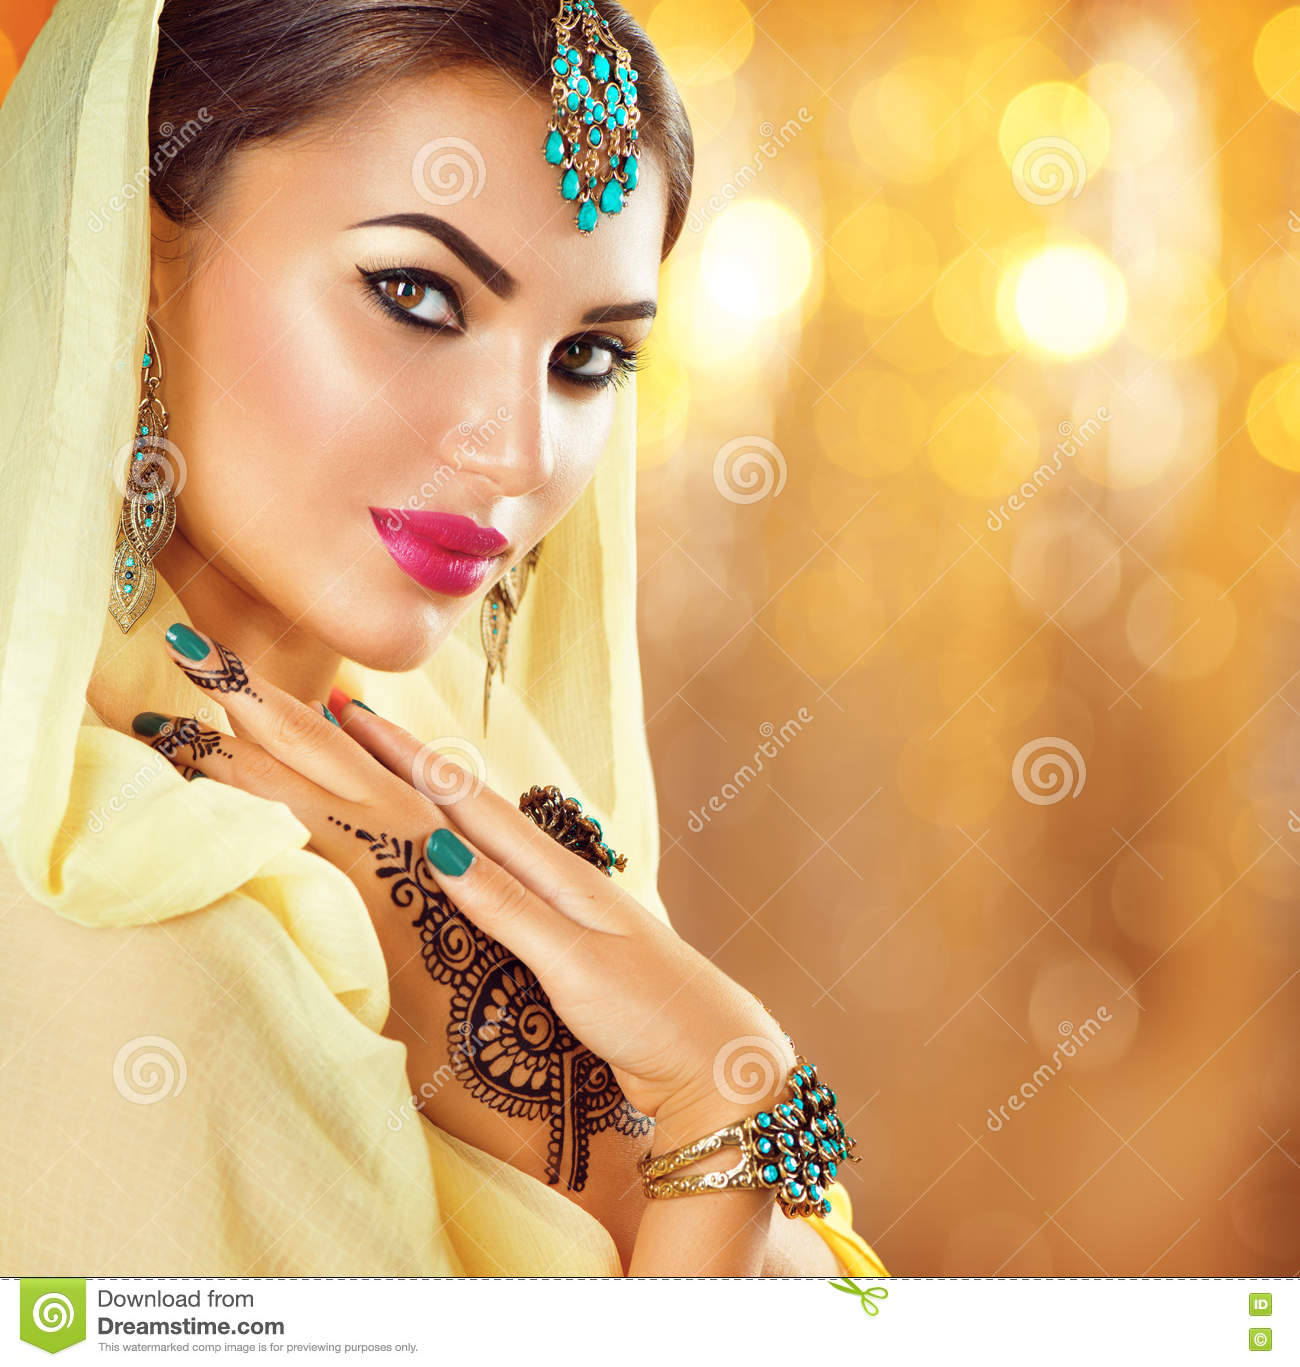 Arabic beauty girl image